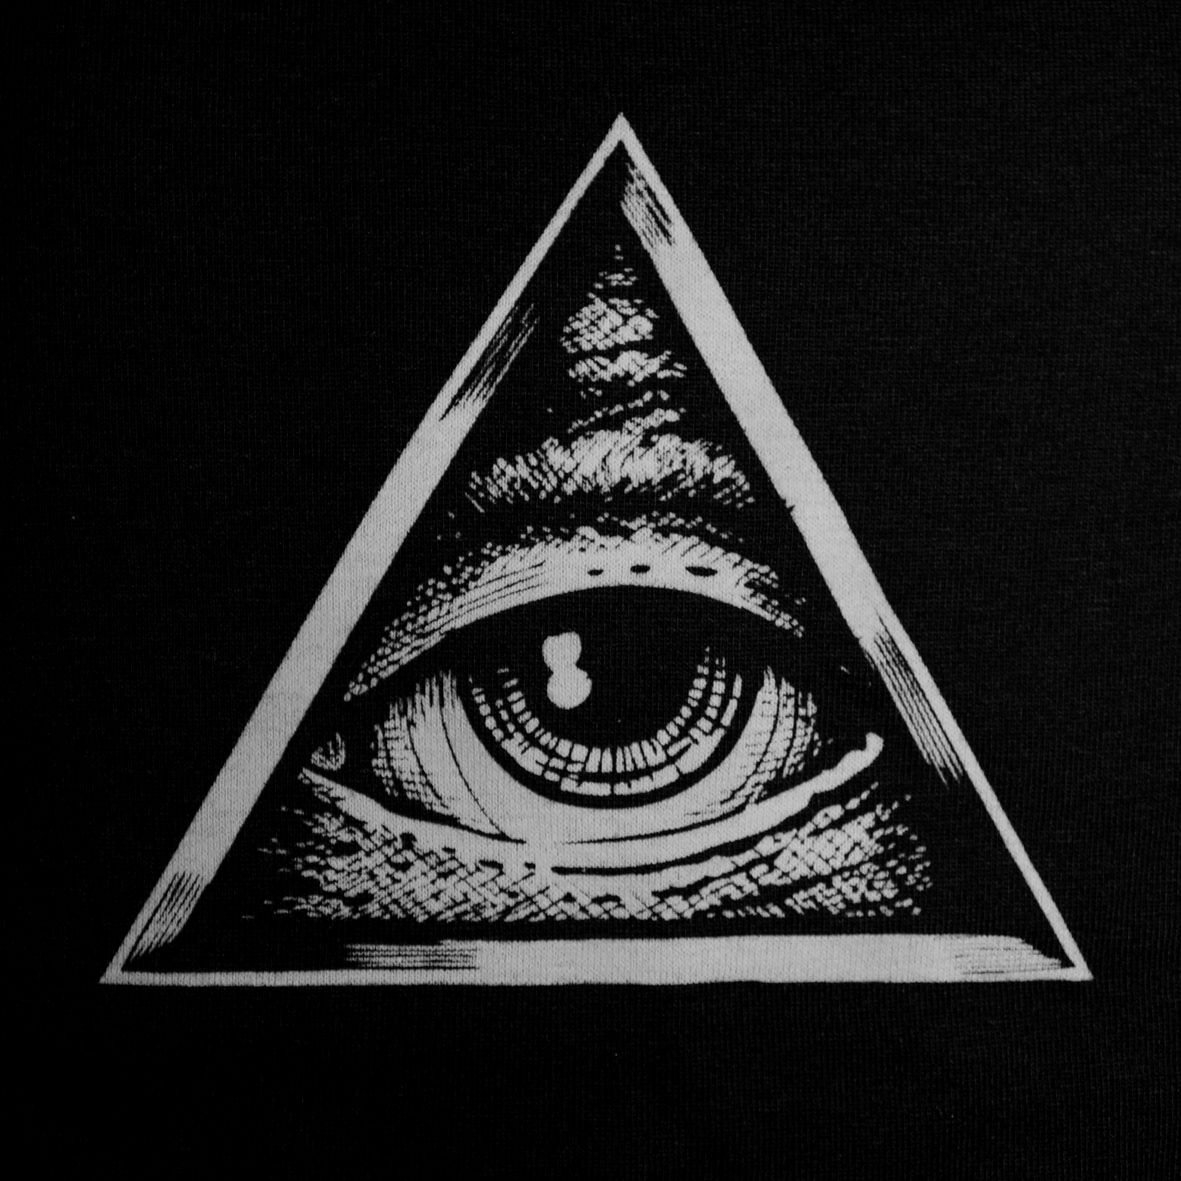 The AllSeeing Eye. The AllSeeing Eye has been around for